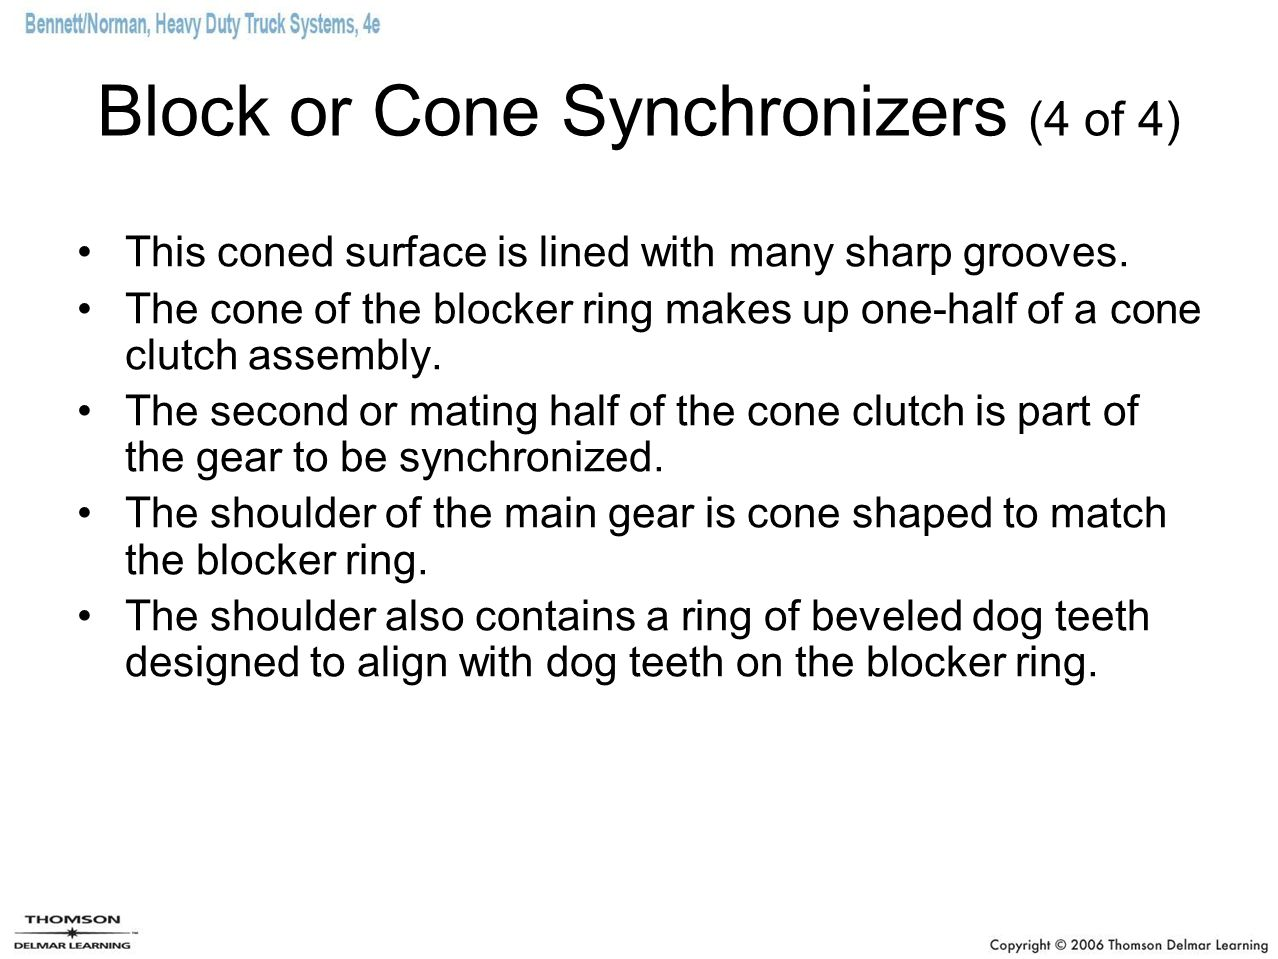 Block or Cone Synchronizers (4 of 4)